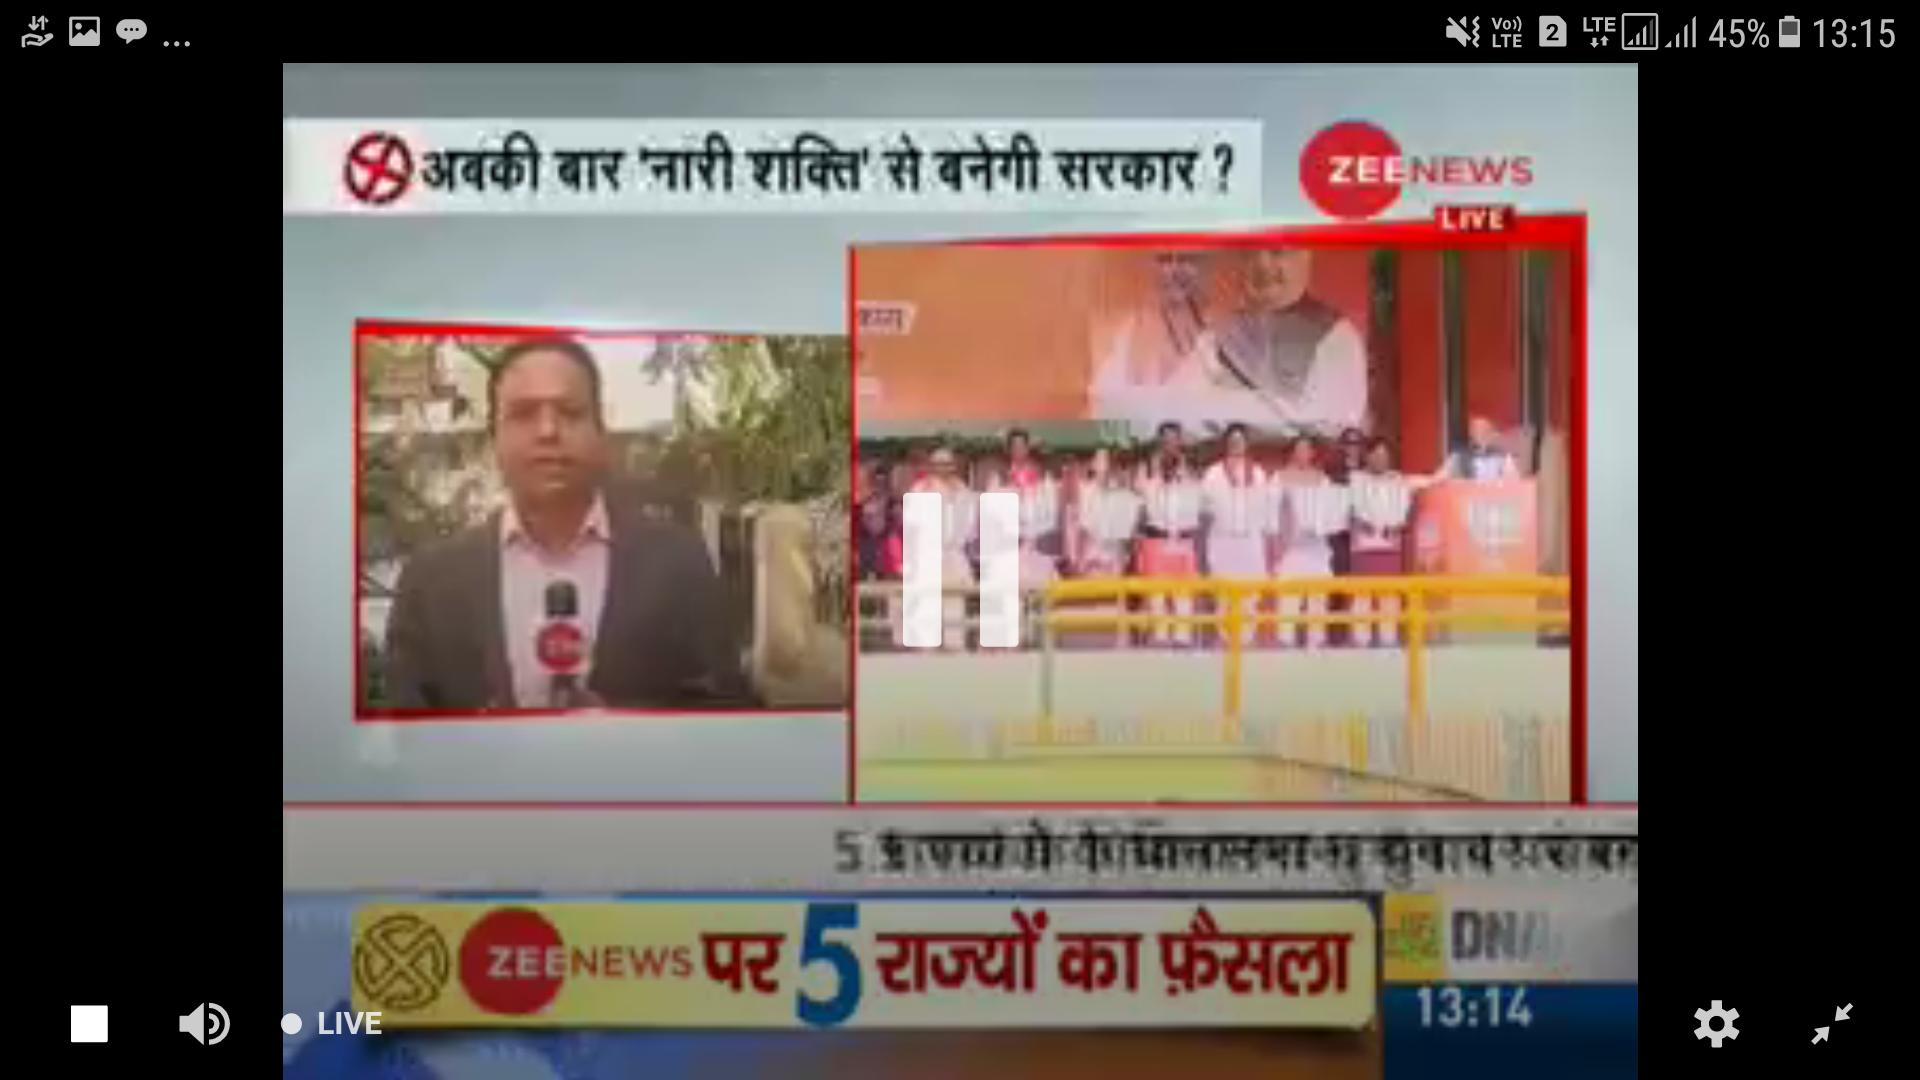 Live Tv Zee News channel for Android - APK Download